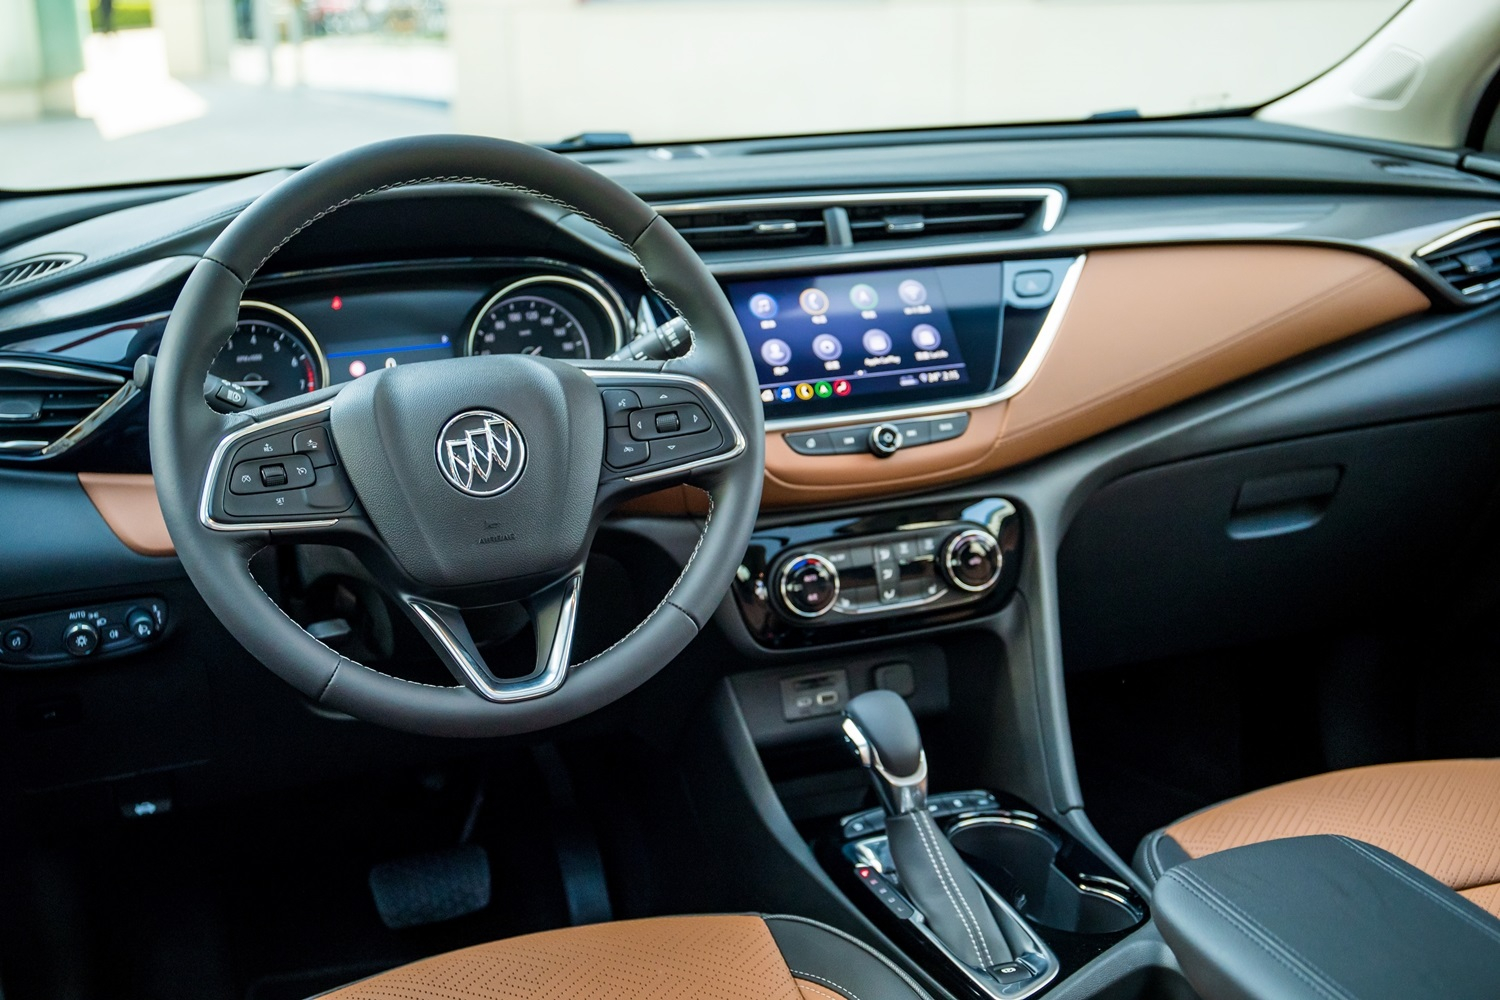 Buick Encore Gx Info, Specs, Pictures, Wiki | Gm Authority Where Is The New 2022 Buick Encore Gx Built